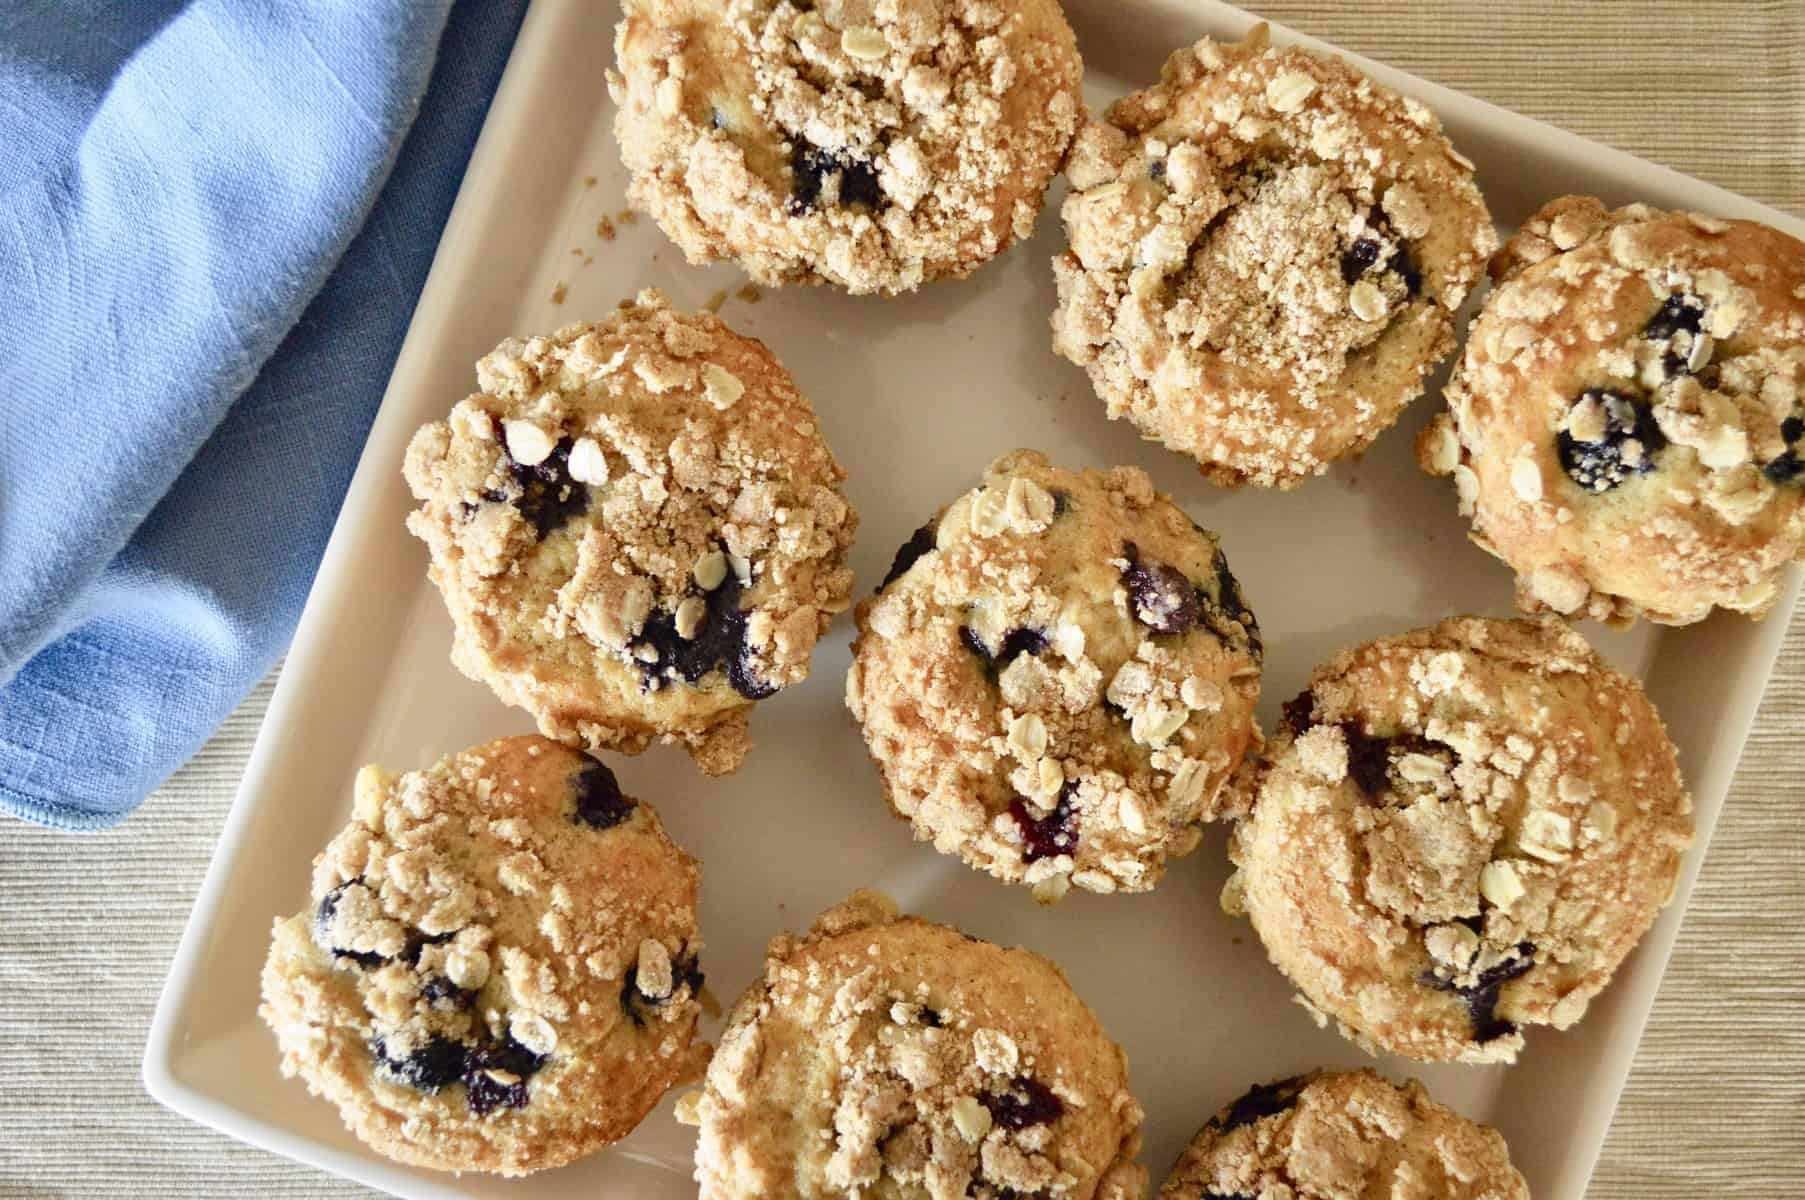 Blueberry Streusel Muffins on a white plate with a blue napkin